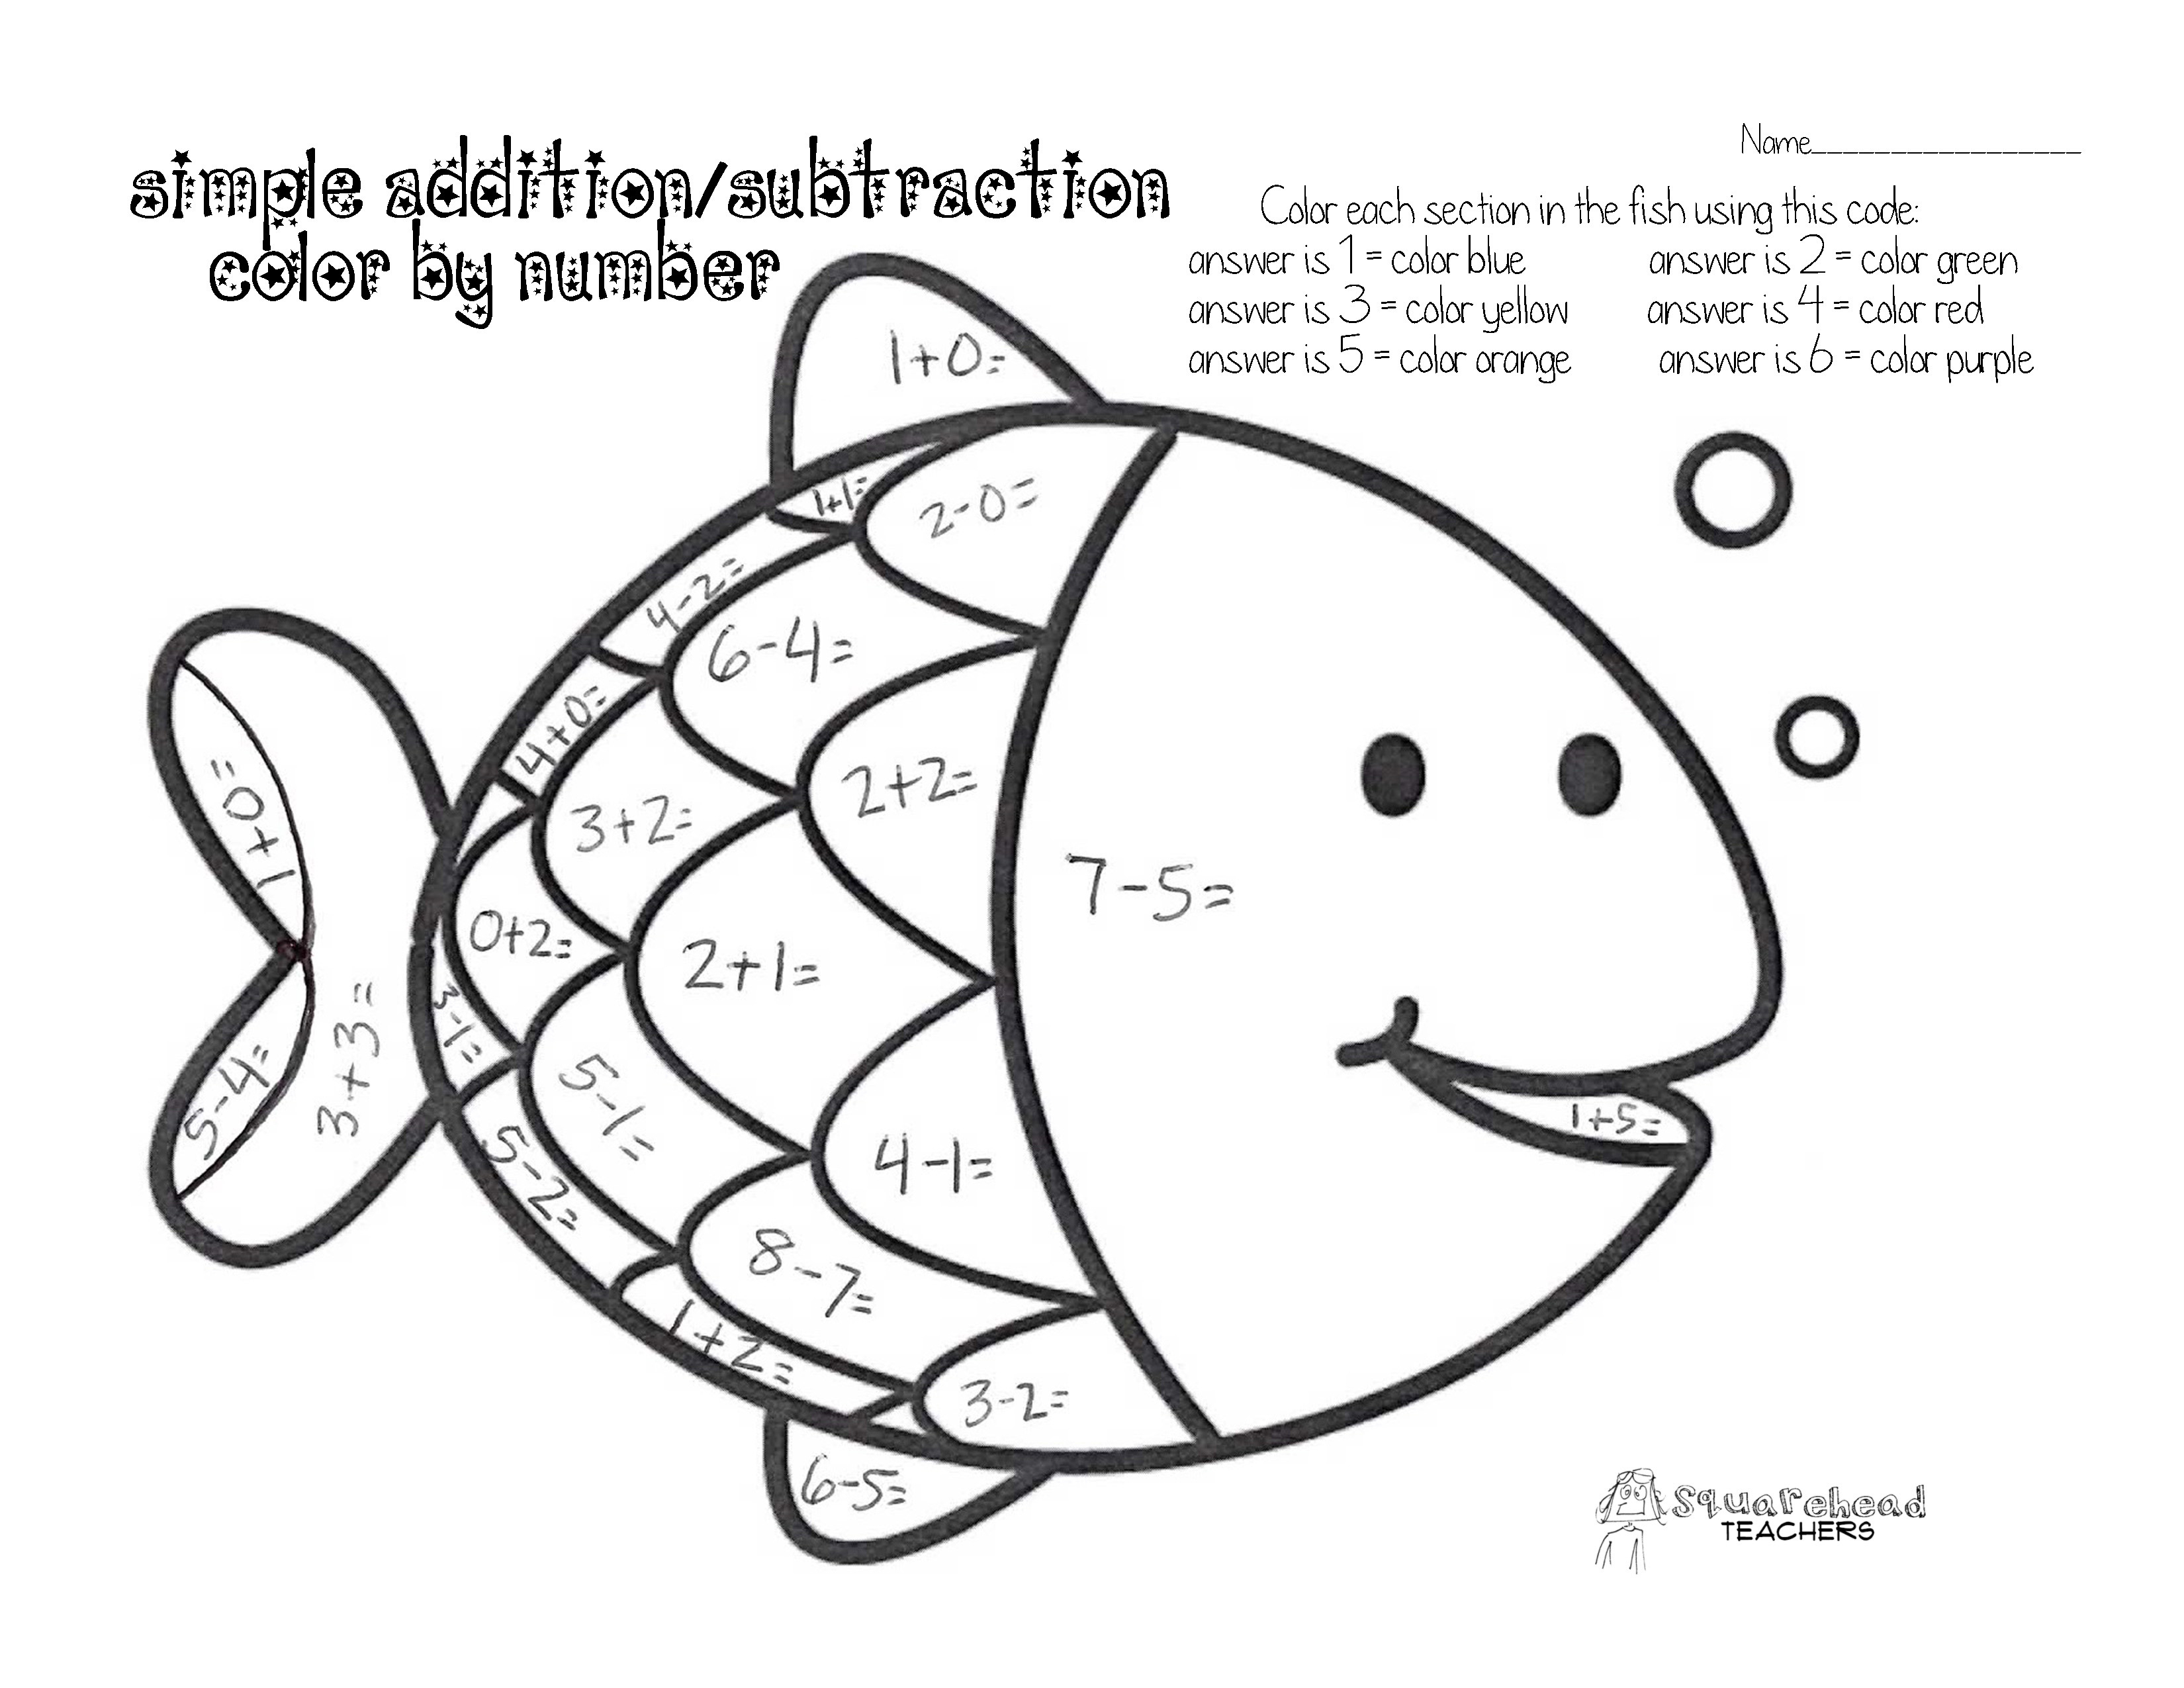 Coloring Pages ~ Free Coloring Printables For Kindergarten Christmas | Free Printable Math Coloring Worksheets For 2Nd Grade